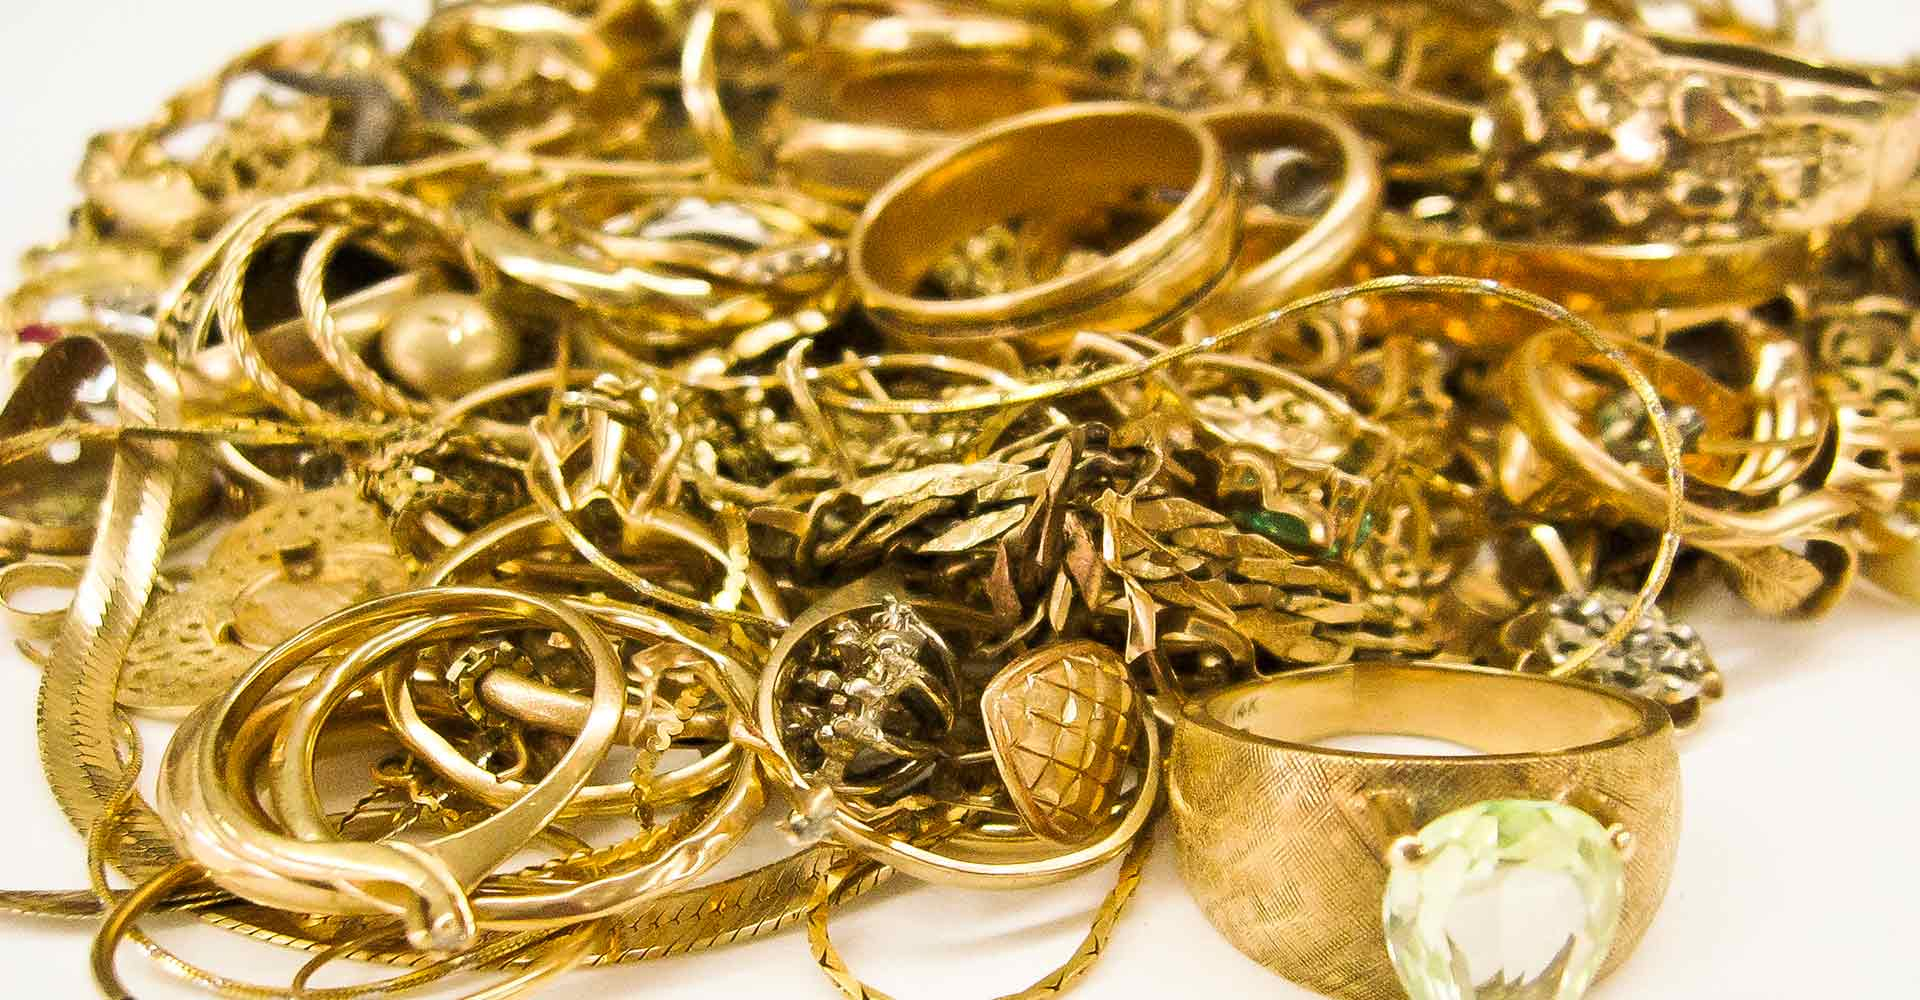 Gold Buying - Gold Buying Service of Ramesh Jewellers, has a full team of jewellery brokers to buy your unwanted gold. We also purchase diamonds, precious gems and coins. We pay the highest prices in the area and will beat any competitor's price.Since 1969 we have been running this family owned business with customer satisfaction at the forefront. We have our own gemologist that has always had a passion for studying gems. If you are in a bind and have unwanted gold, diamonds, precious gems and coins, we can help you out. We will buy your gold, diamonds, precious gems and coins, and give you top dollar in exchange for them. Our honest business and experience in this field make us the best jewellery brokers in the area.